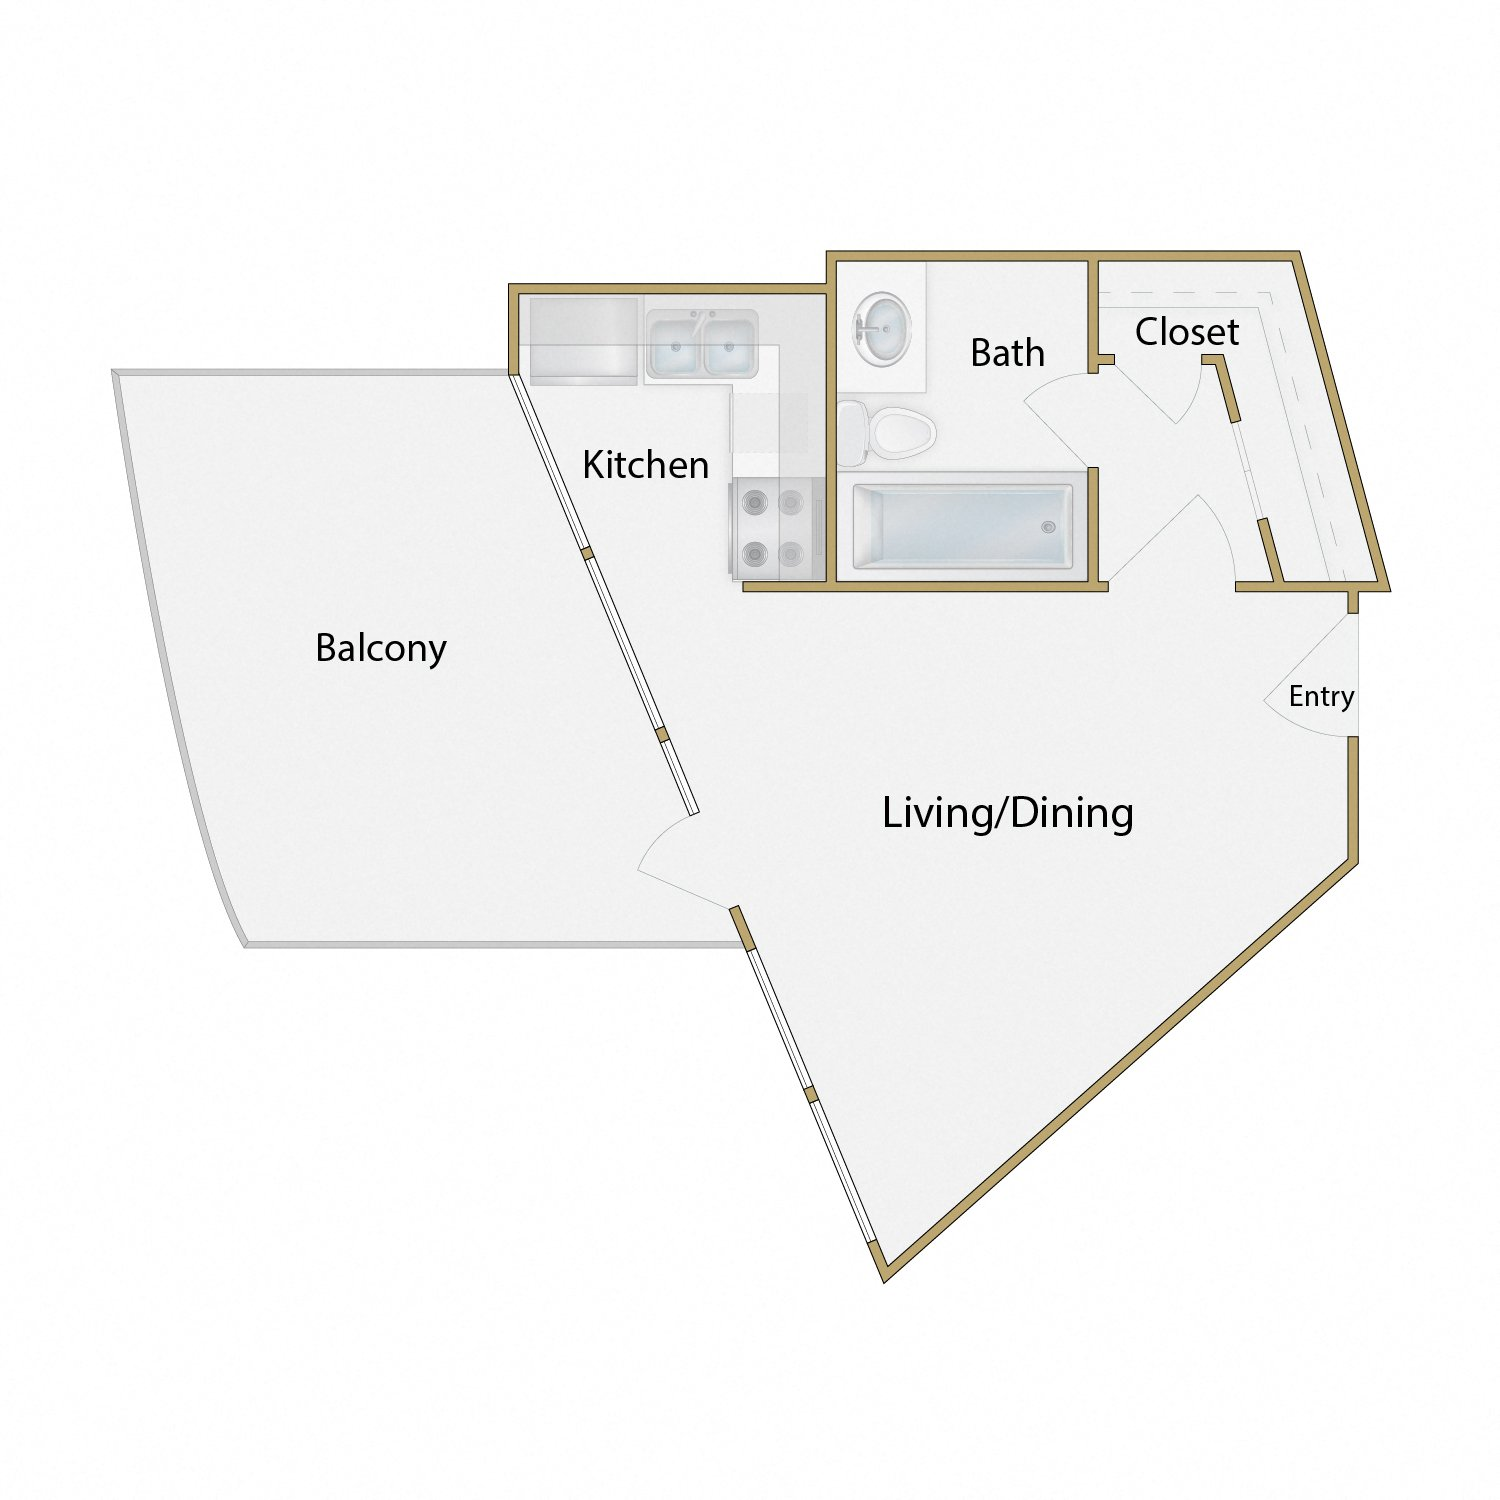 Pier Thirty Nine floor plan diagram. Studio apartment with an open kitchen dining and living area, one bathroom, and a balcony.